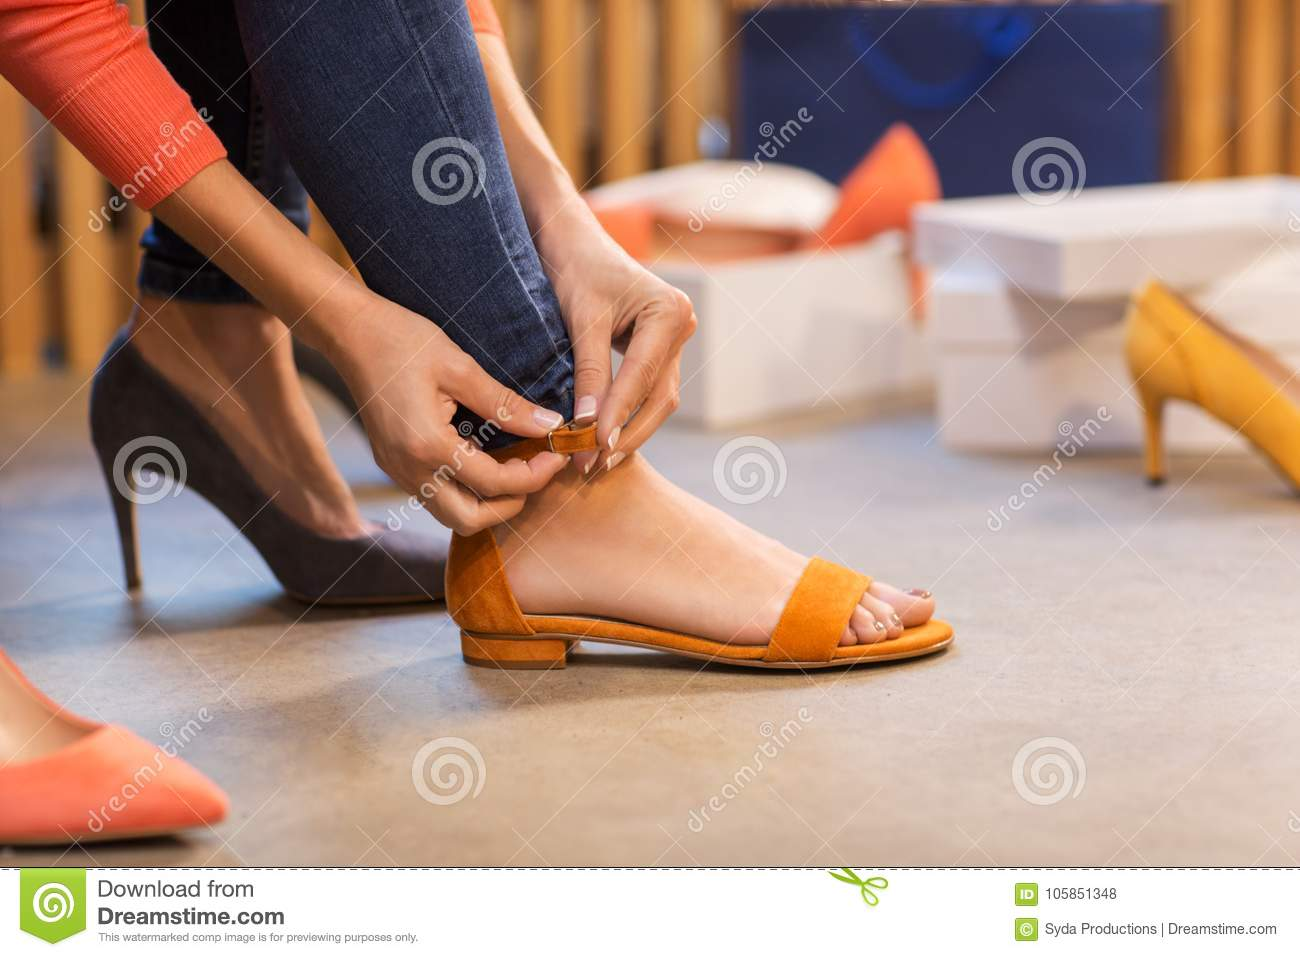 Young woman trying sandals at shoe store